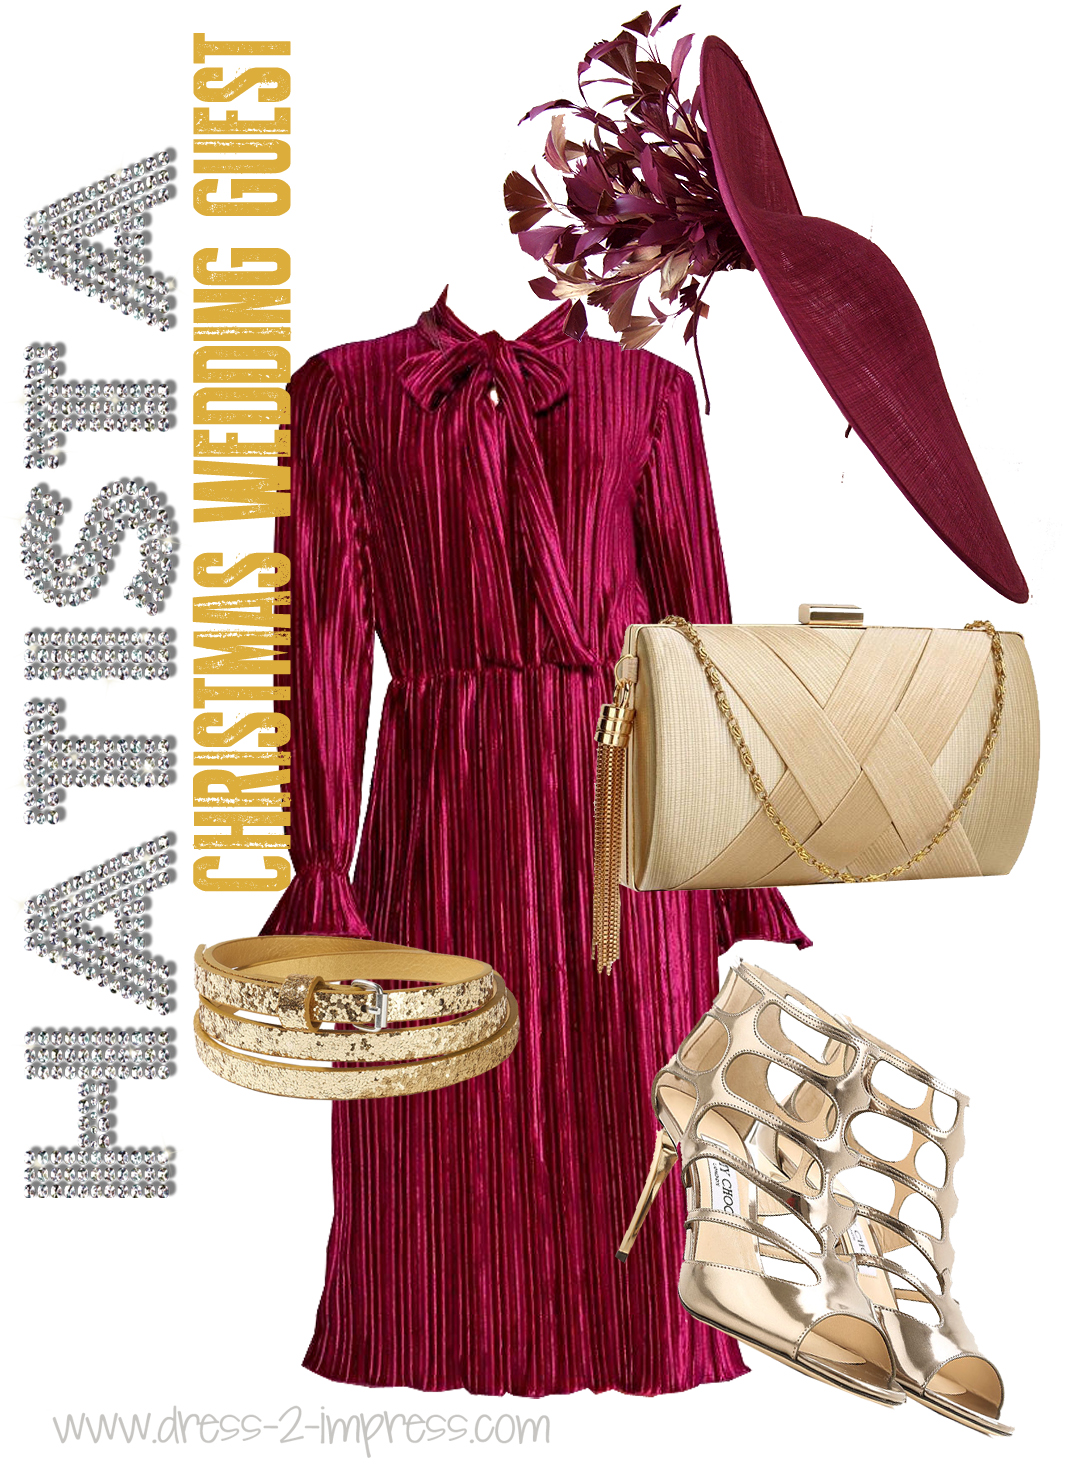 Velvet Trend in Luxury Jewel Tones - Perfect for Christmas Wedding Guests and Mother of the Bride. Read Style Fashion Outfit Ideas Tips for Winter Christmas Weddings from THE HATISTA www.dress-2-impress.com #fashionista #christmaswedding #weddings #outfits #weddingthemes #outfitideas